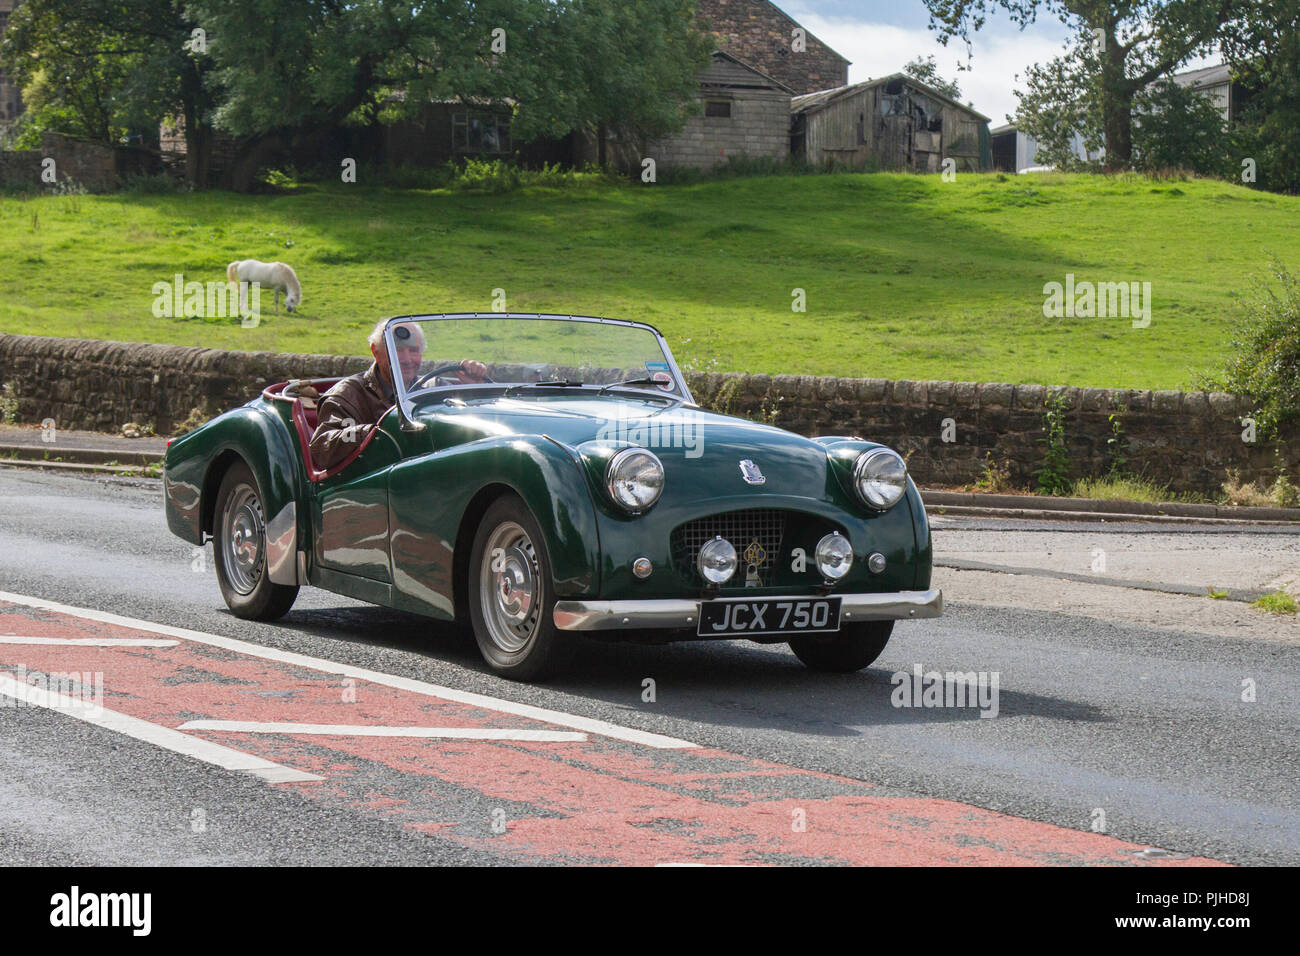 Triumph TR2 Classic, vintage, veteran, cars of yesteryear, restored collectibles at Hoghton Towers Car Rally, UK - Stock Image